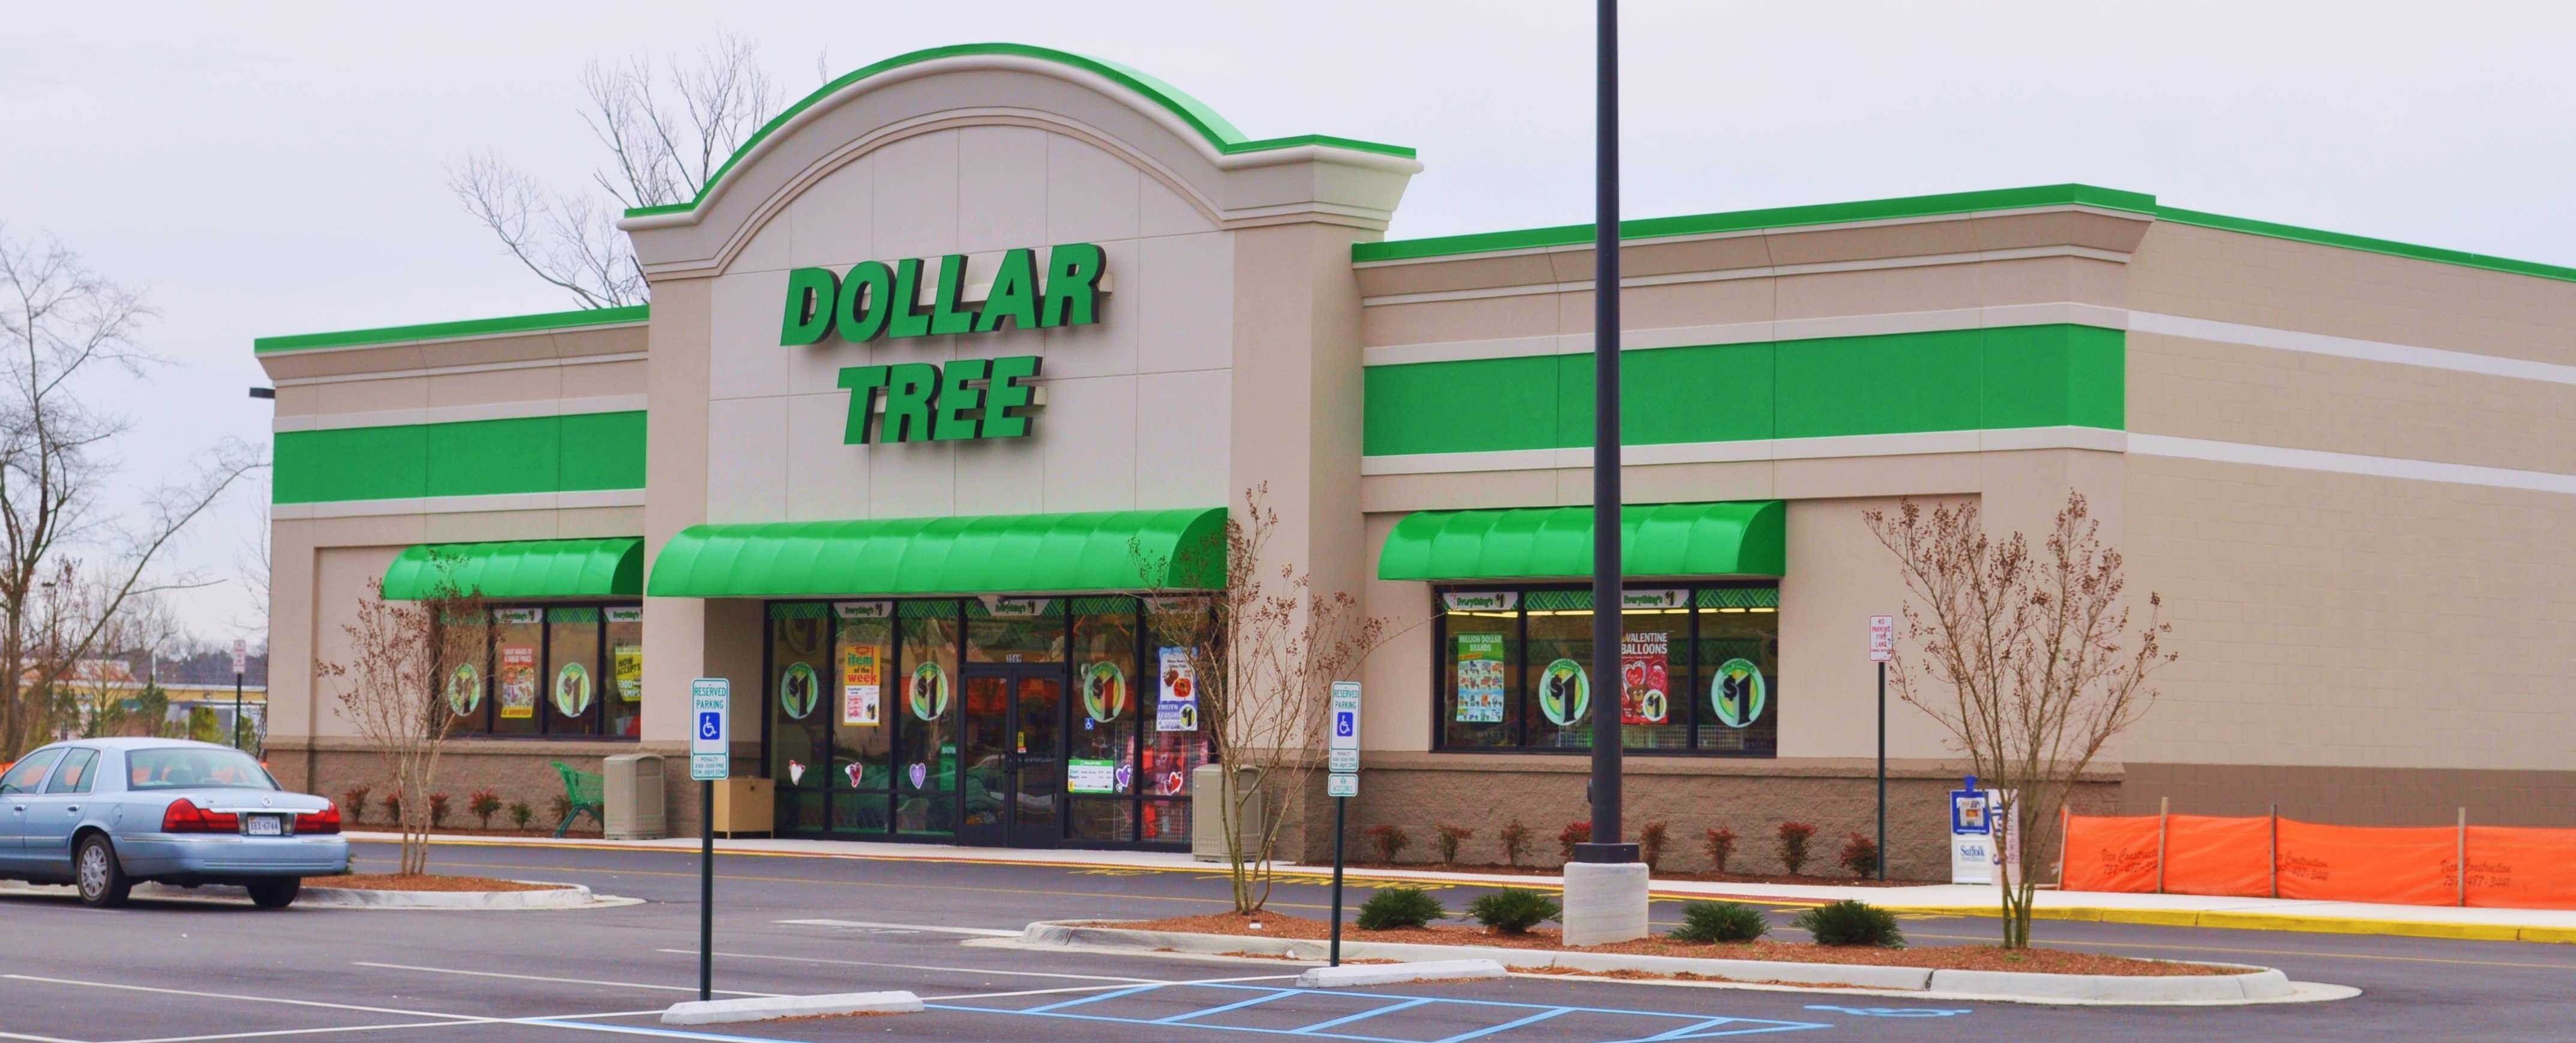 Dollar Tree Hours, dollar tree hours sunday